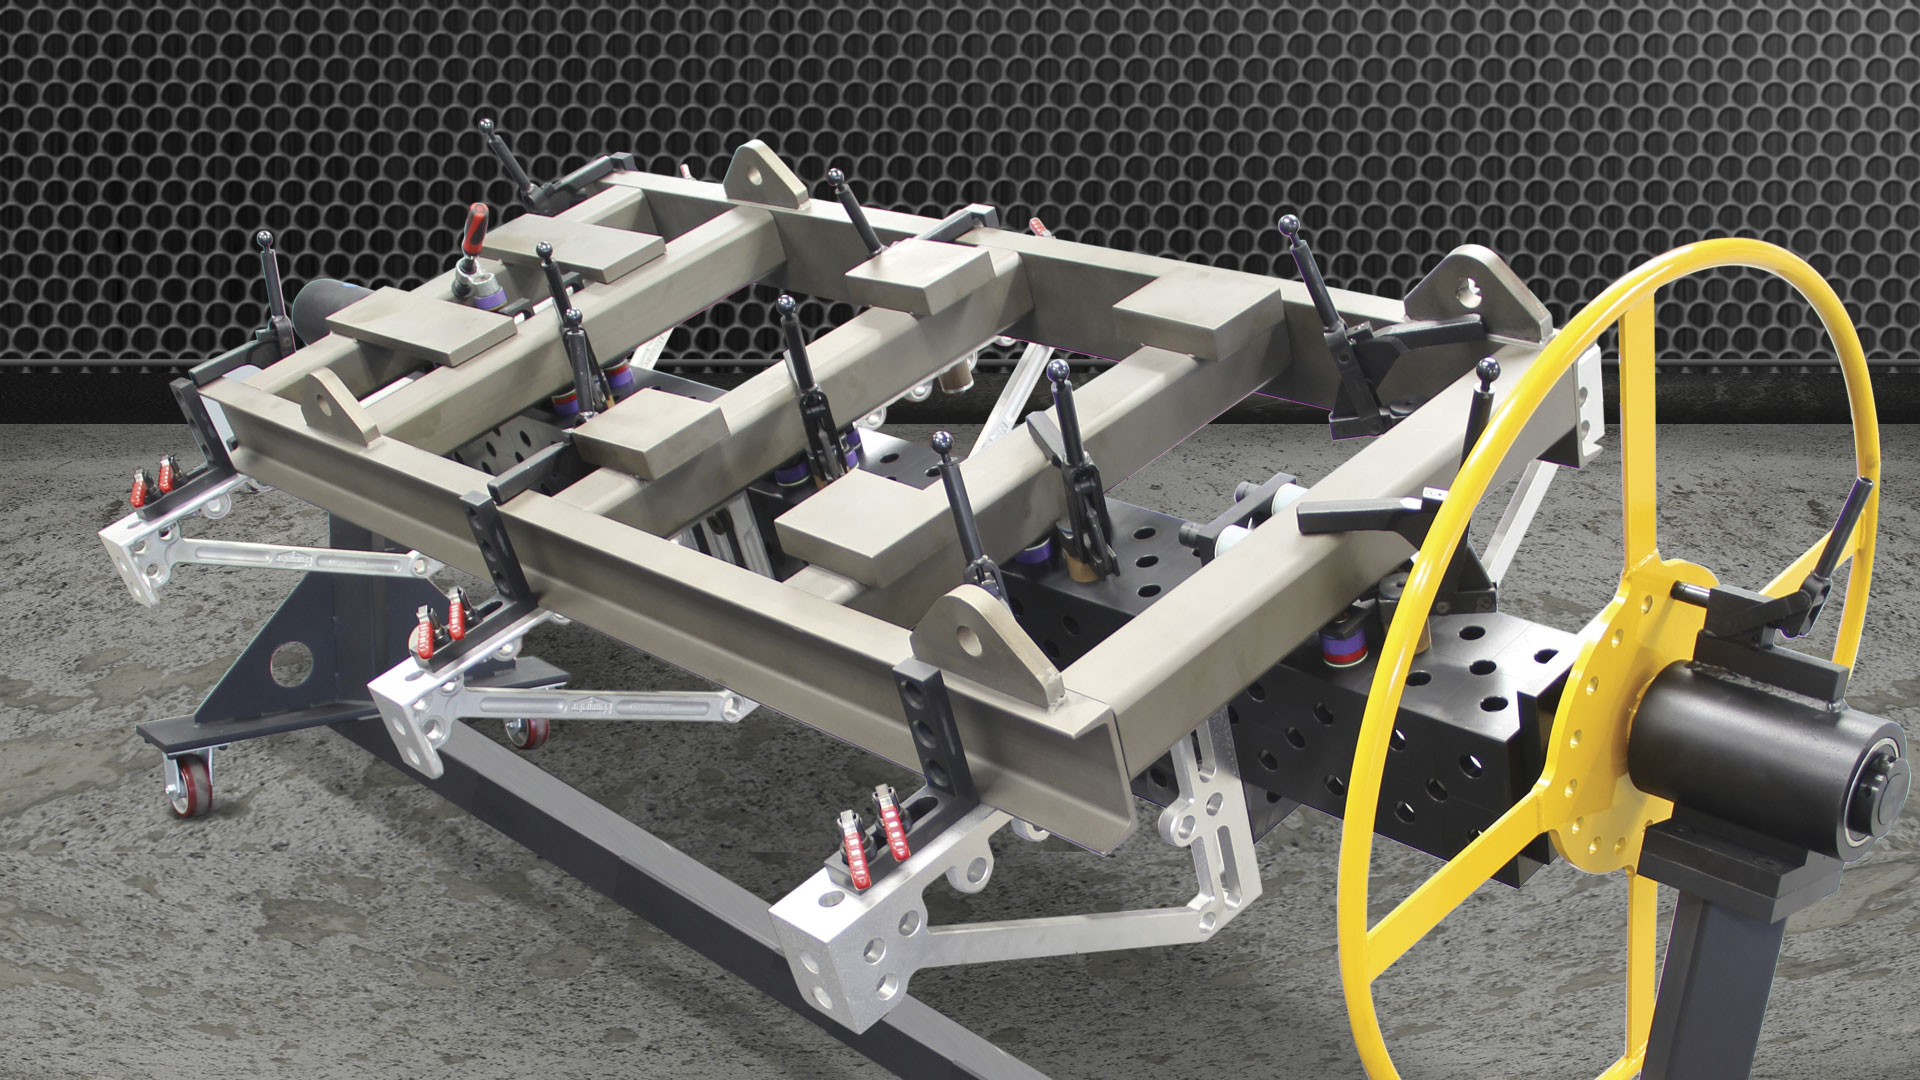 A rollover rotating positioner with a heavy duty modular spine for heavier parts with a load capacity of 1,360 kg (3,000 lb).